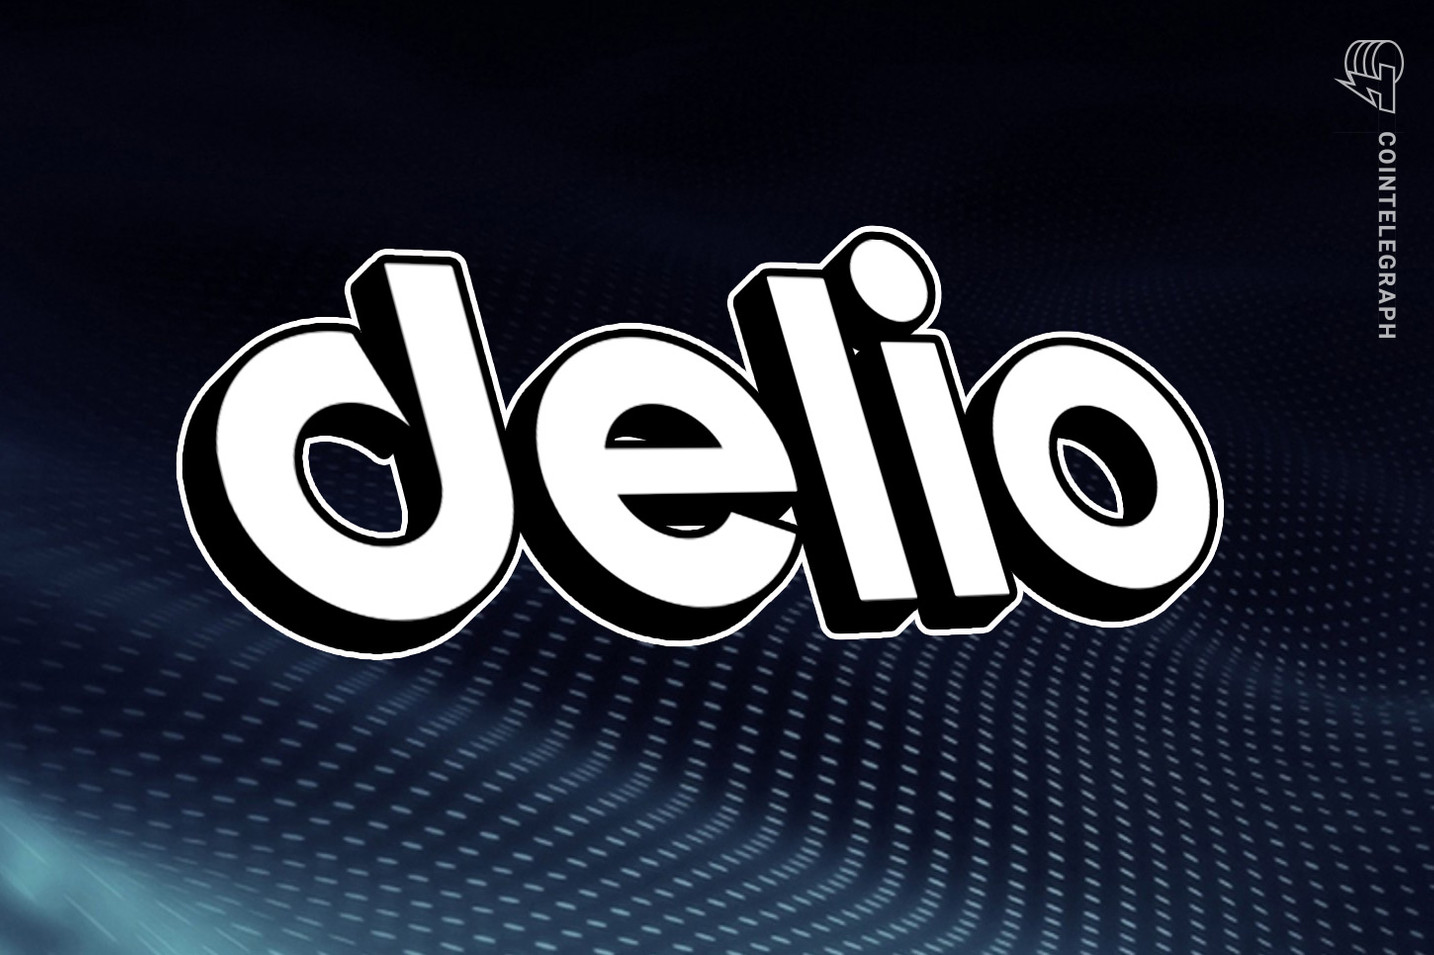 Delio and OK Financial Group to develop digital asset service in South Korea